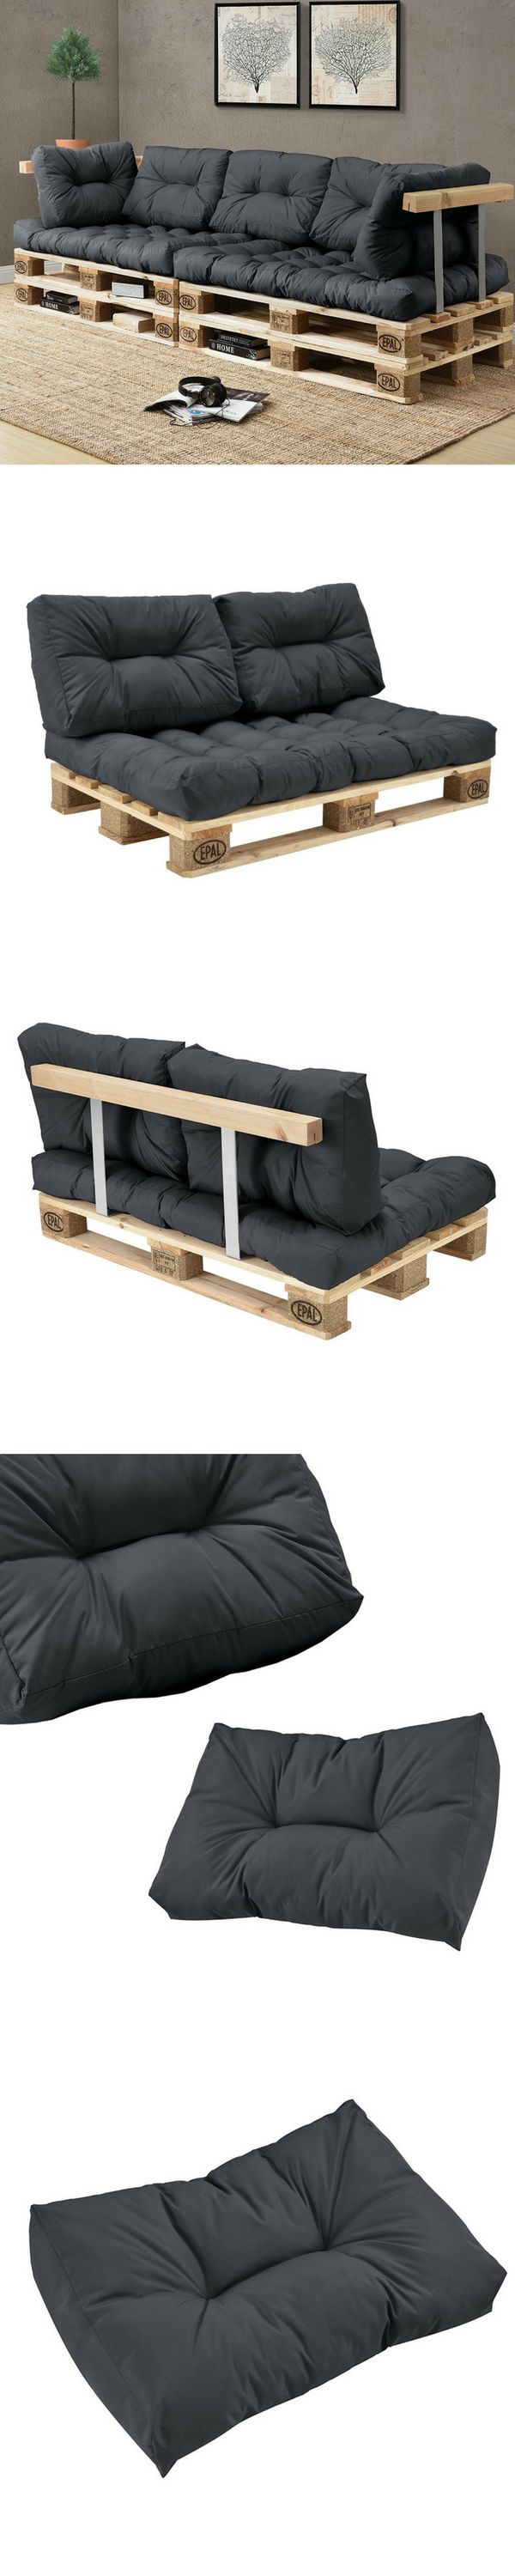 les 25 meilleures id es de la cat gorie lettres en bois sur pinterest lettres peintes lettres. Black Bedroom Furniture Sets. Home Design Ideas